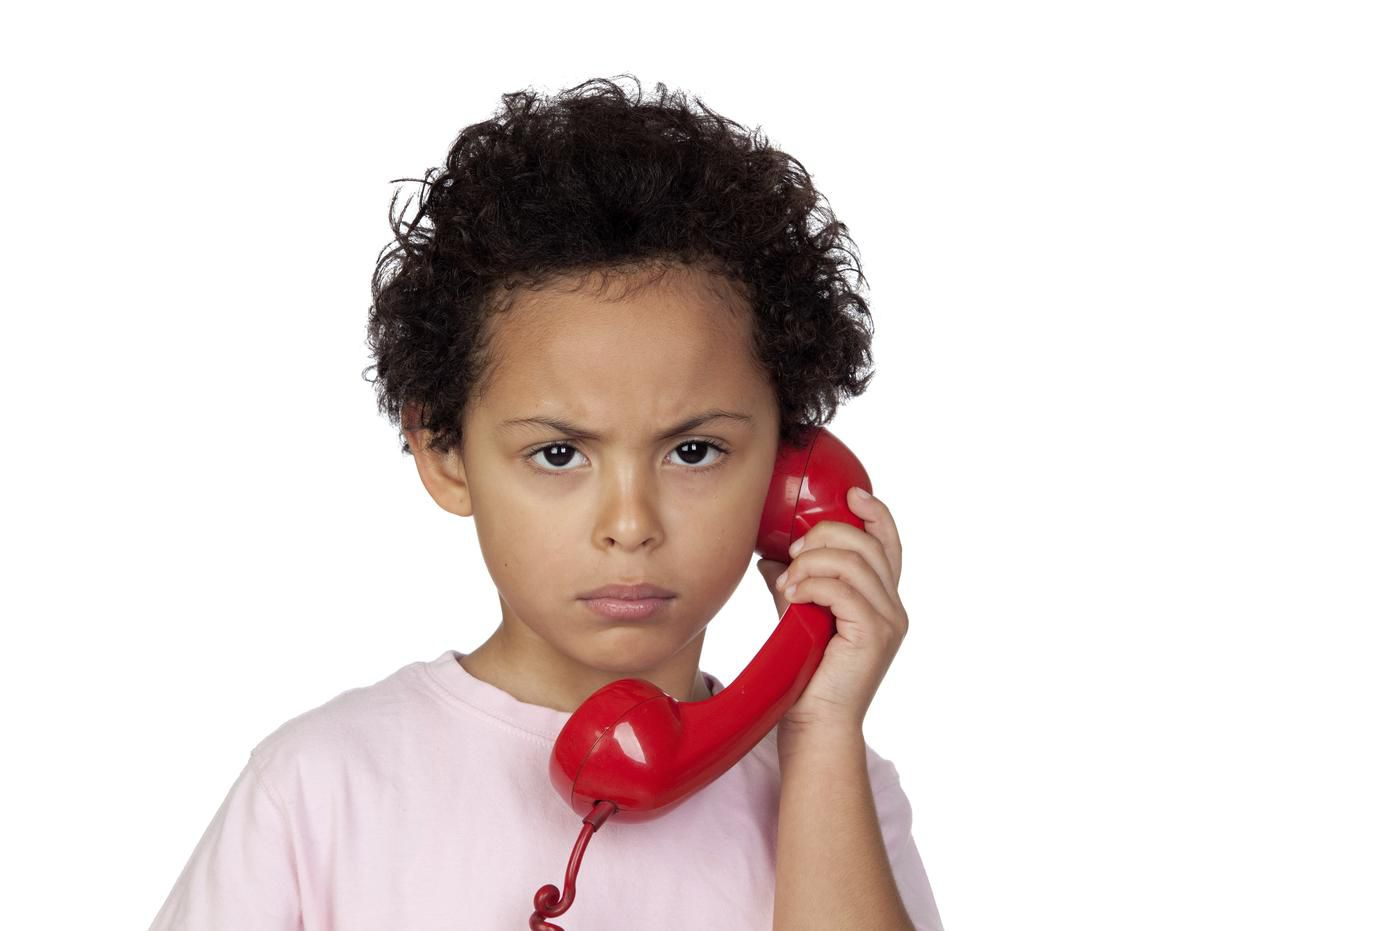 'You s***holes!': Boy, 8, NOT happy about local paper replacing cartoons leaves hilariously rude voicemail to editor